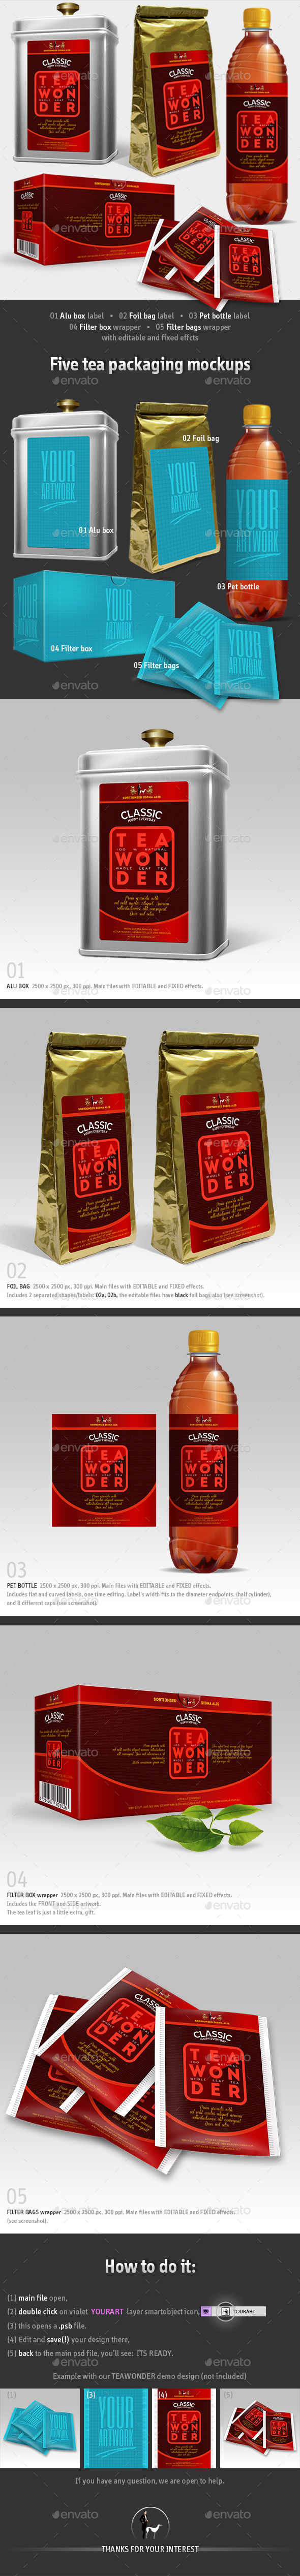 5 Tea Packaging Mockups - Packaging Product Mock-Ups